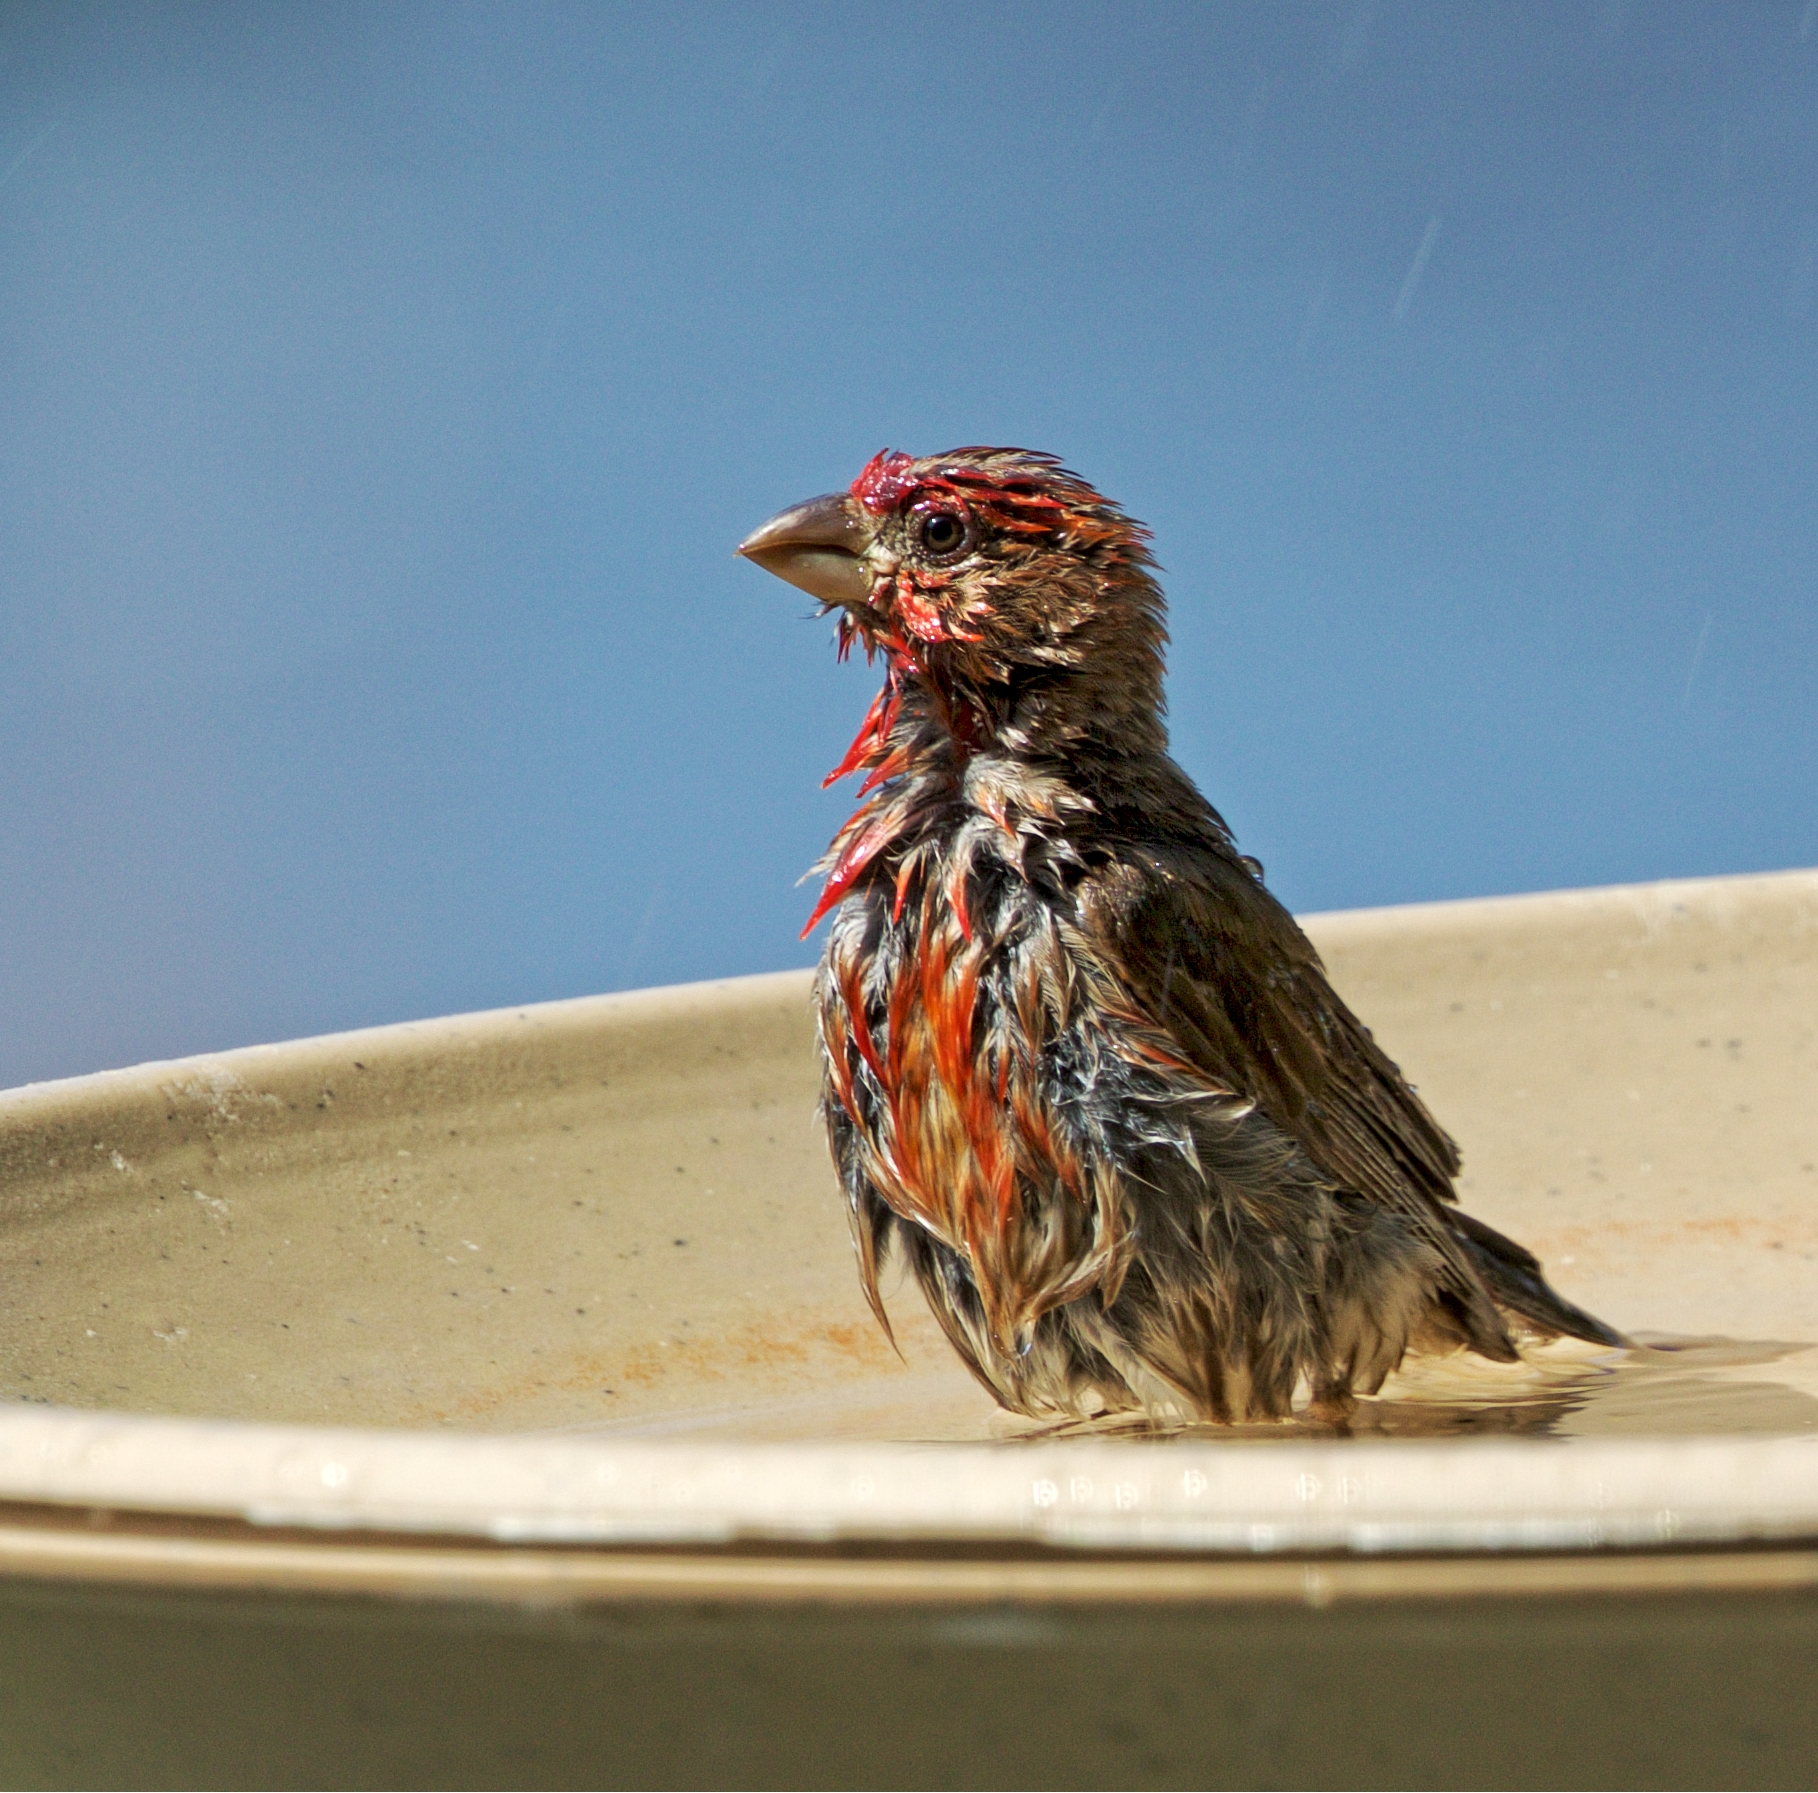 It is hotter than a Firecracker on the 4th of July here in Florida..glad I can soak my feet n feathers in this cool bath..